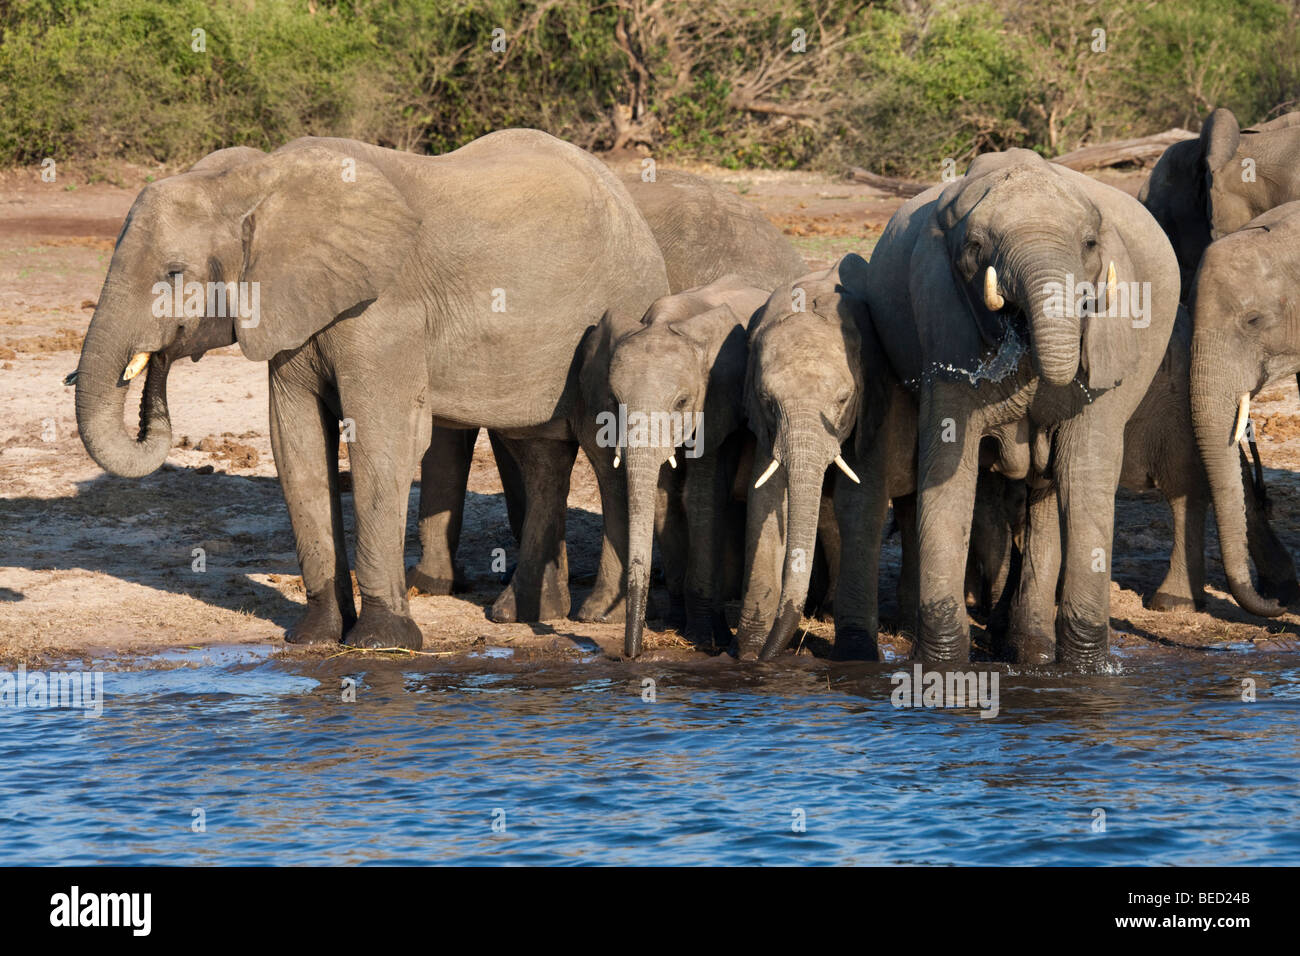 A group of African Elephants (Loxodonta africana) drinking at the Chobe River in Chobe National Park in Botswana - Stock Image